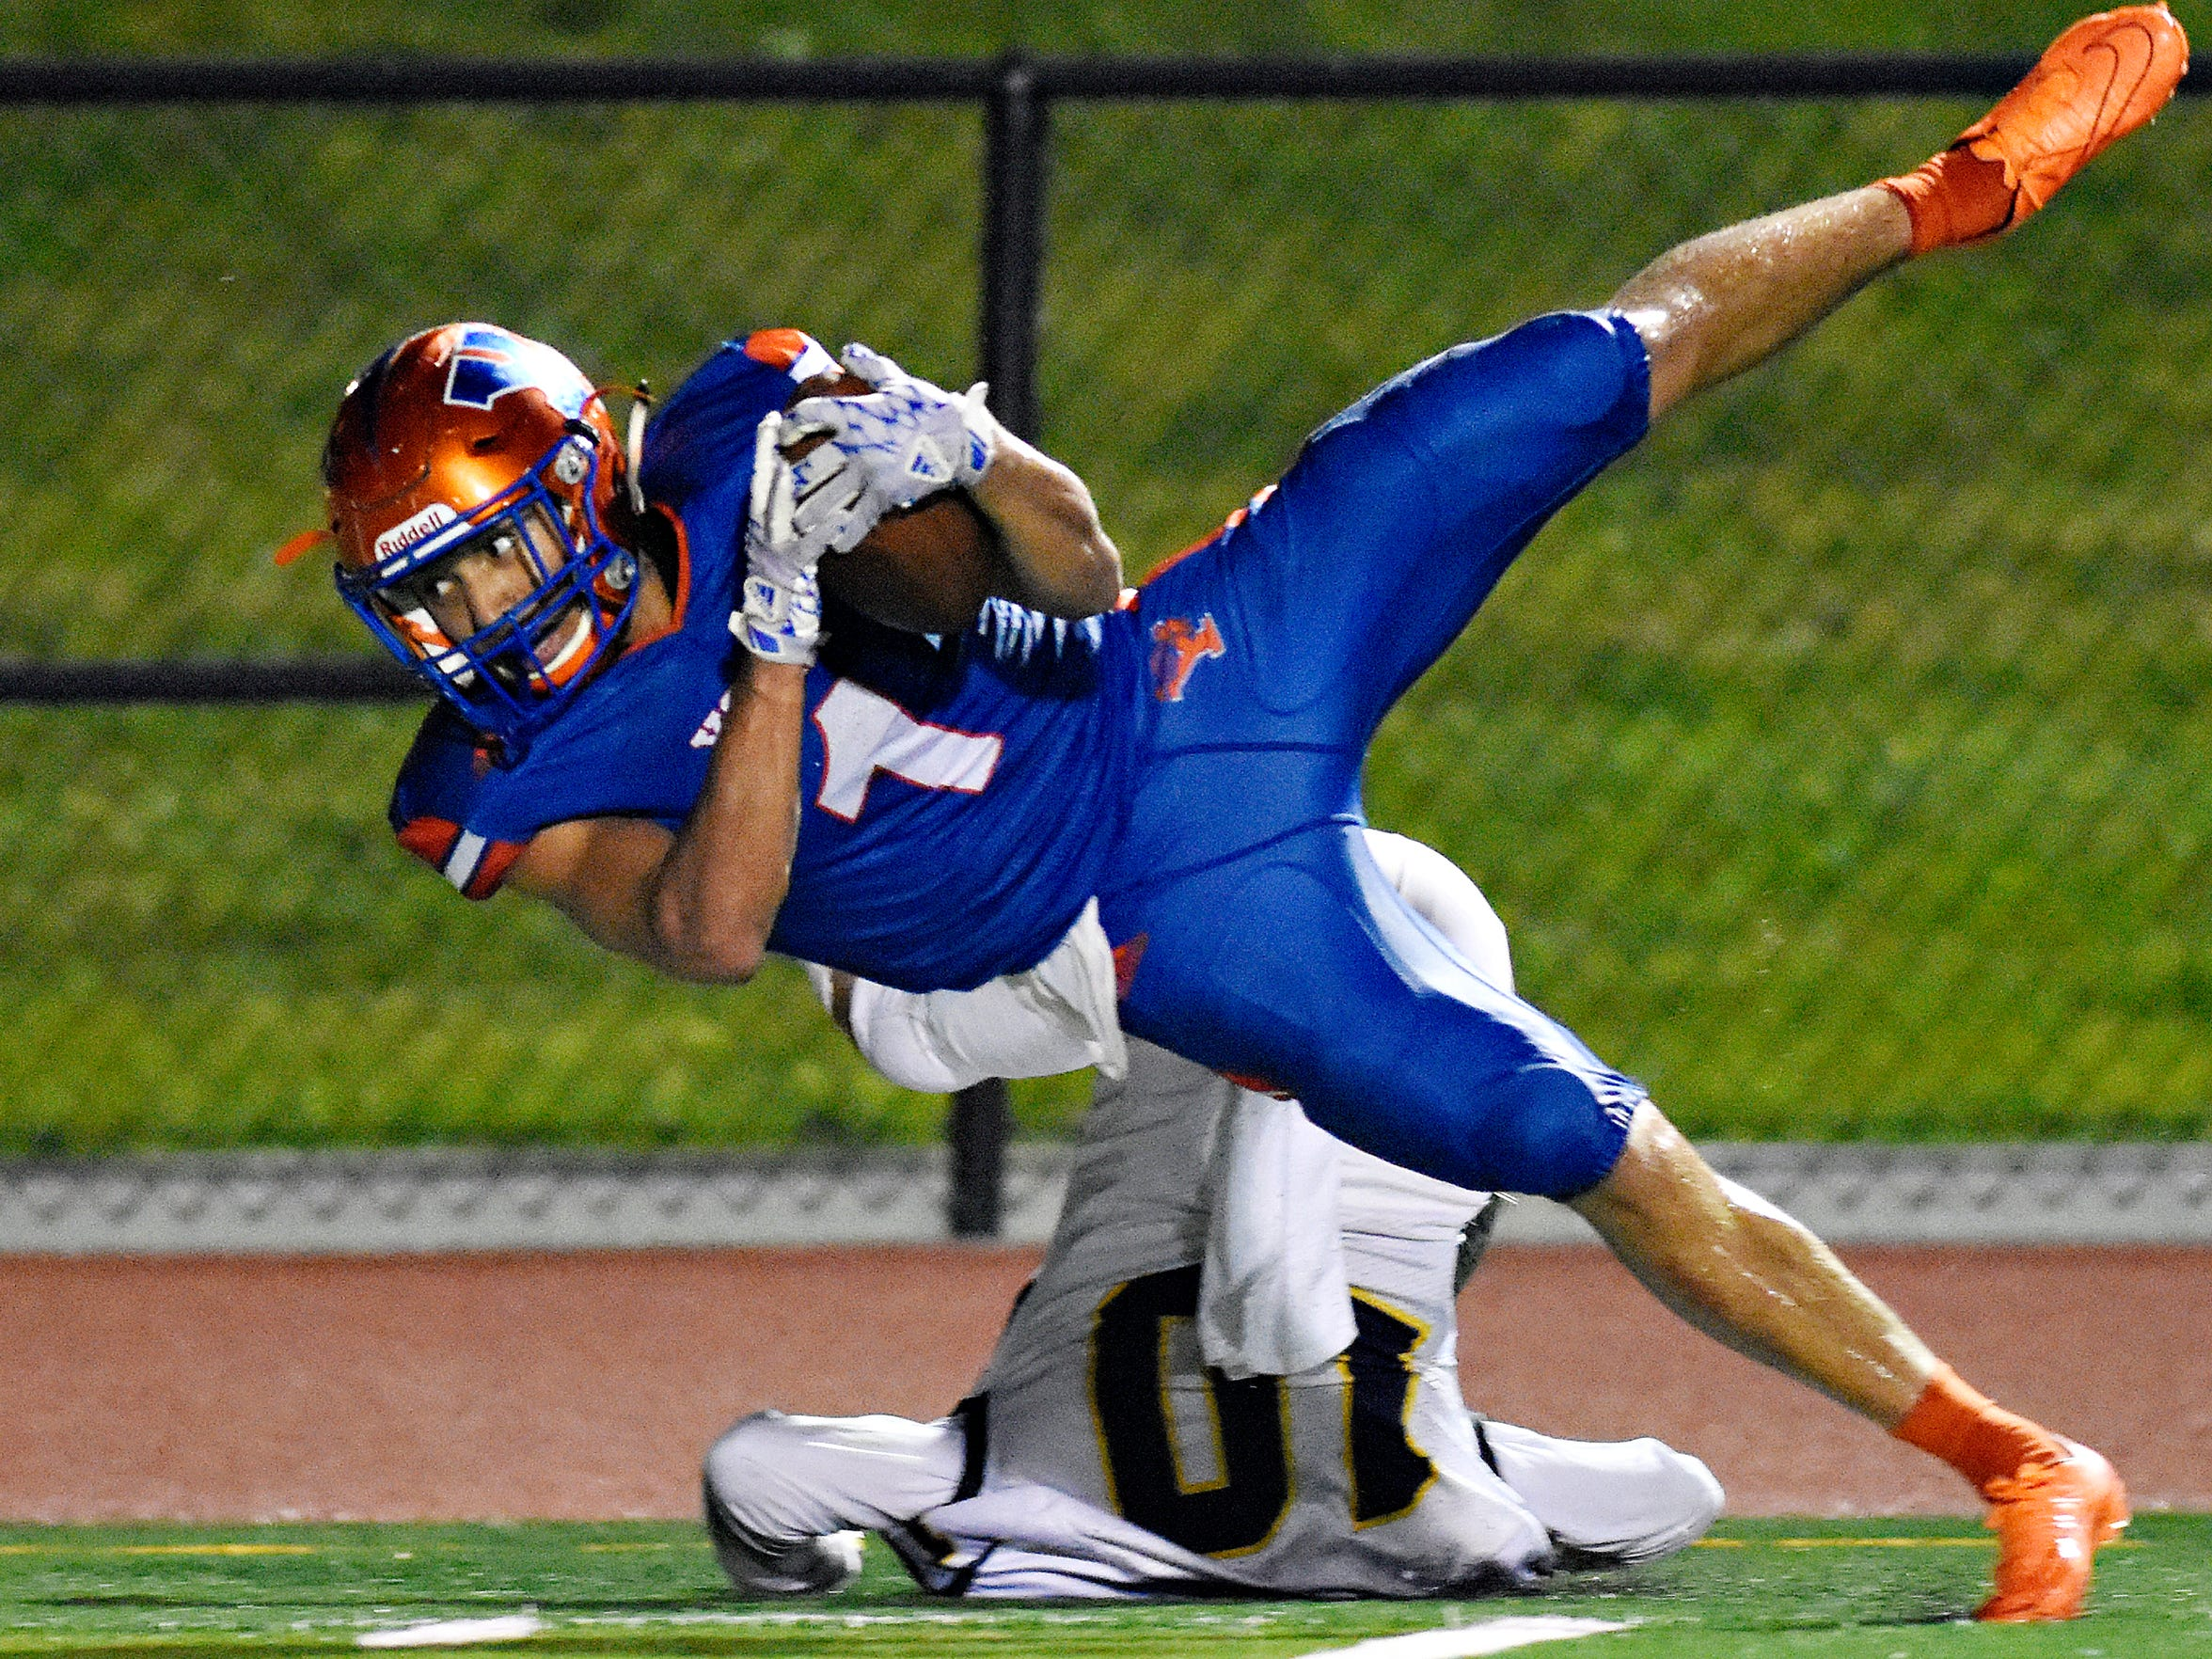 York High's Dayjure Stewart dives for the end zone in a game last season. DISPATCH FILE PHOTO.